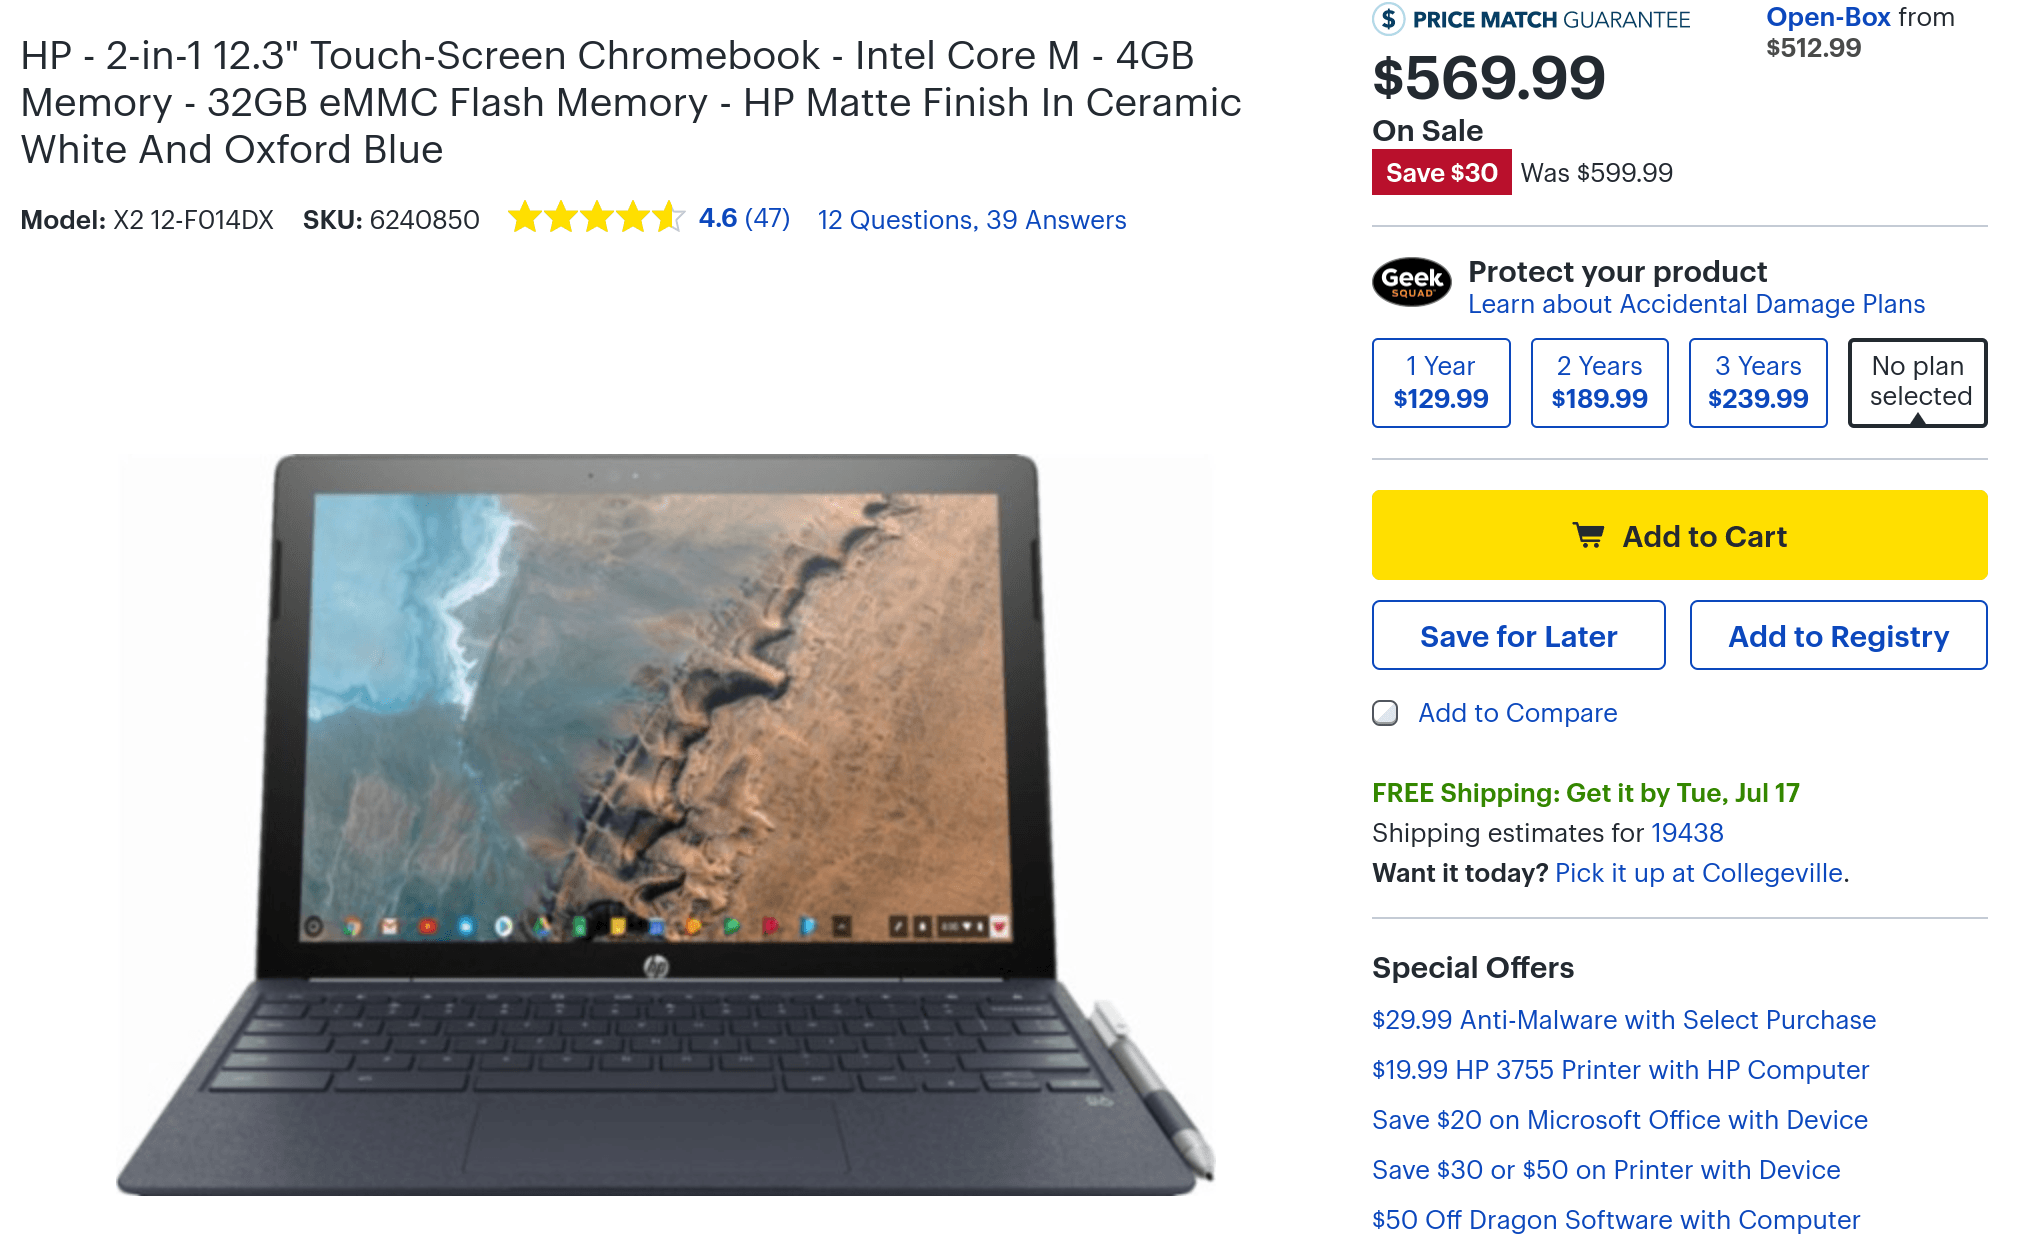 HP Chromebook X2 on sale at Best Buy